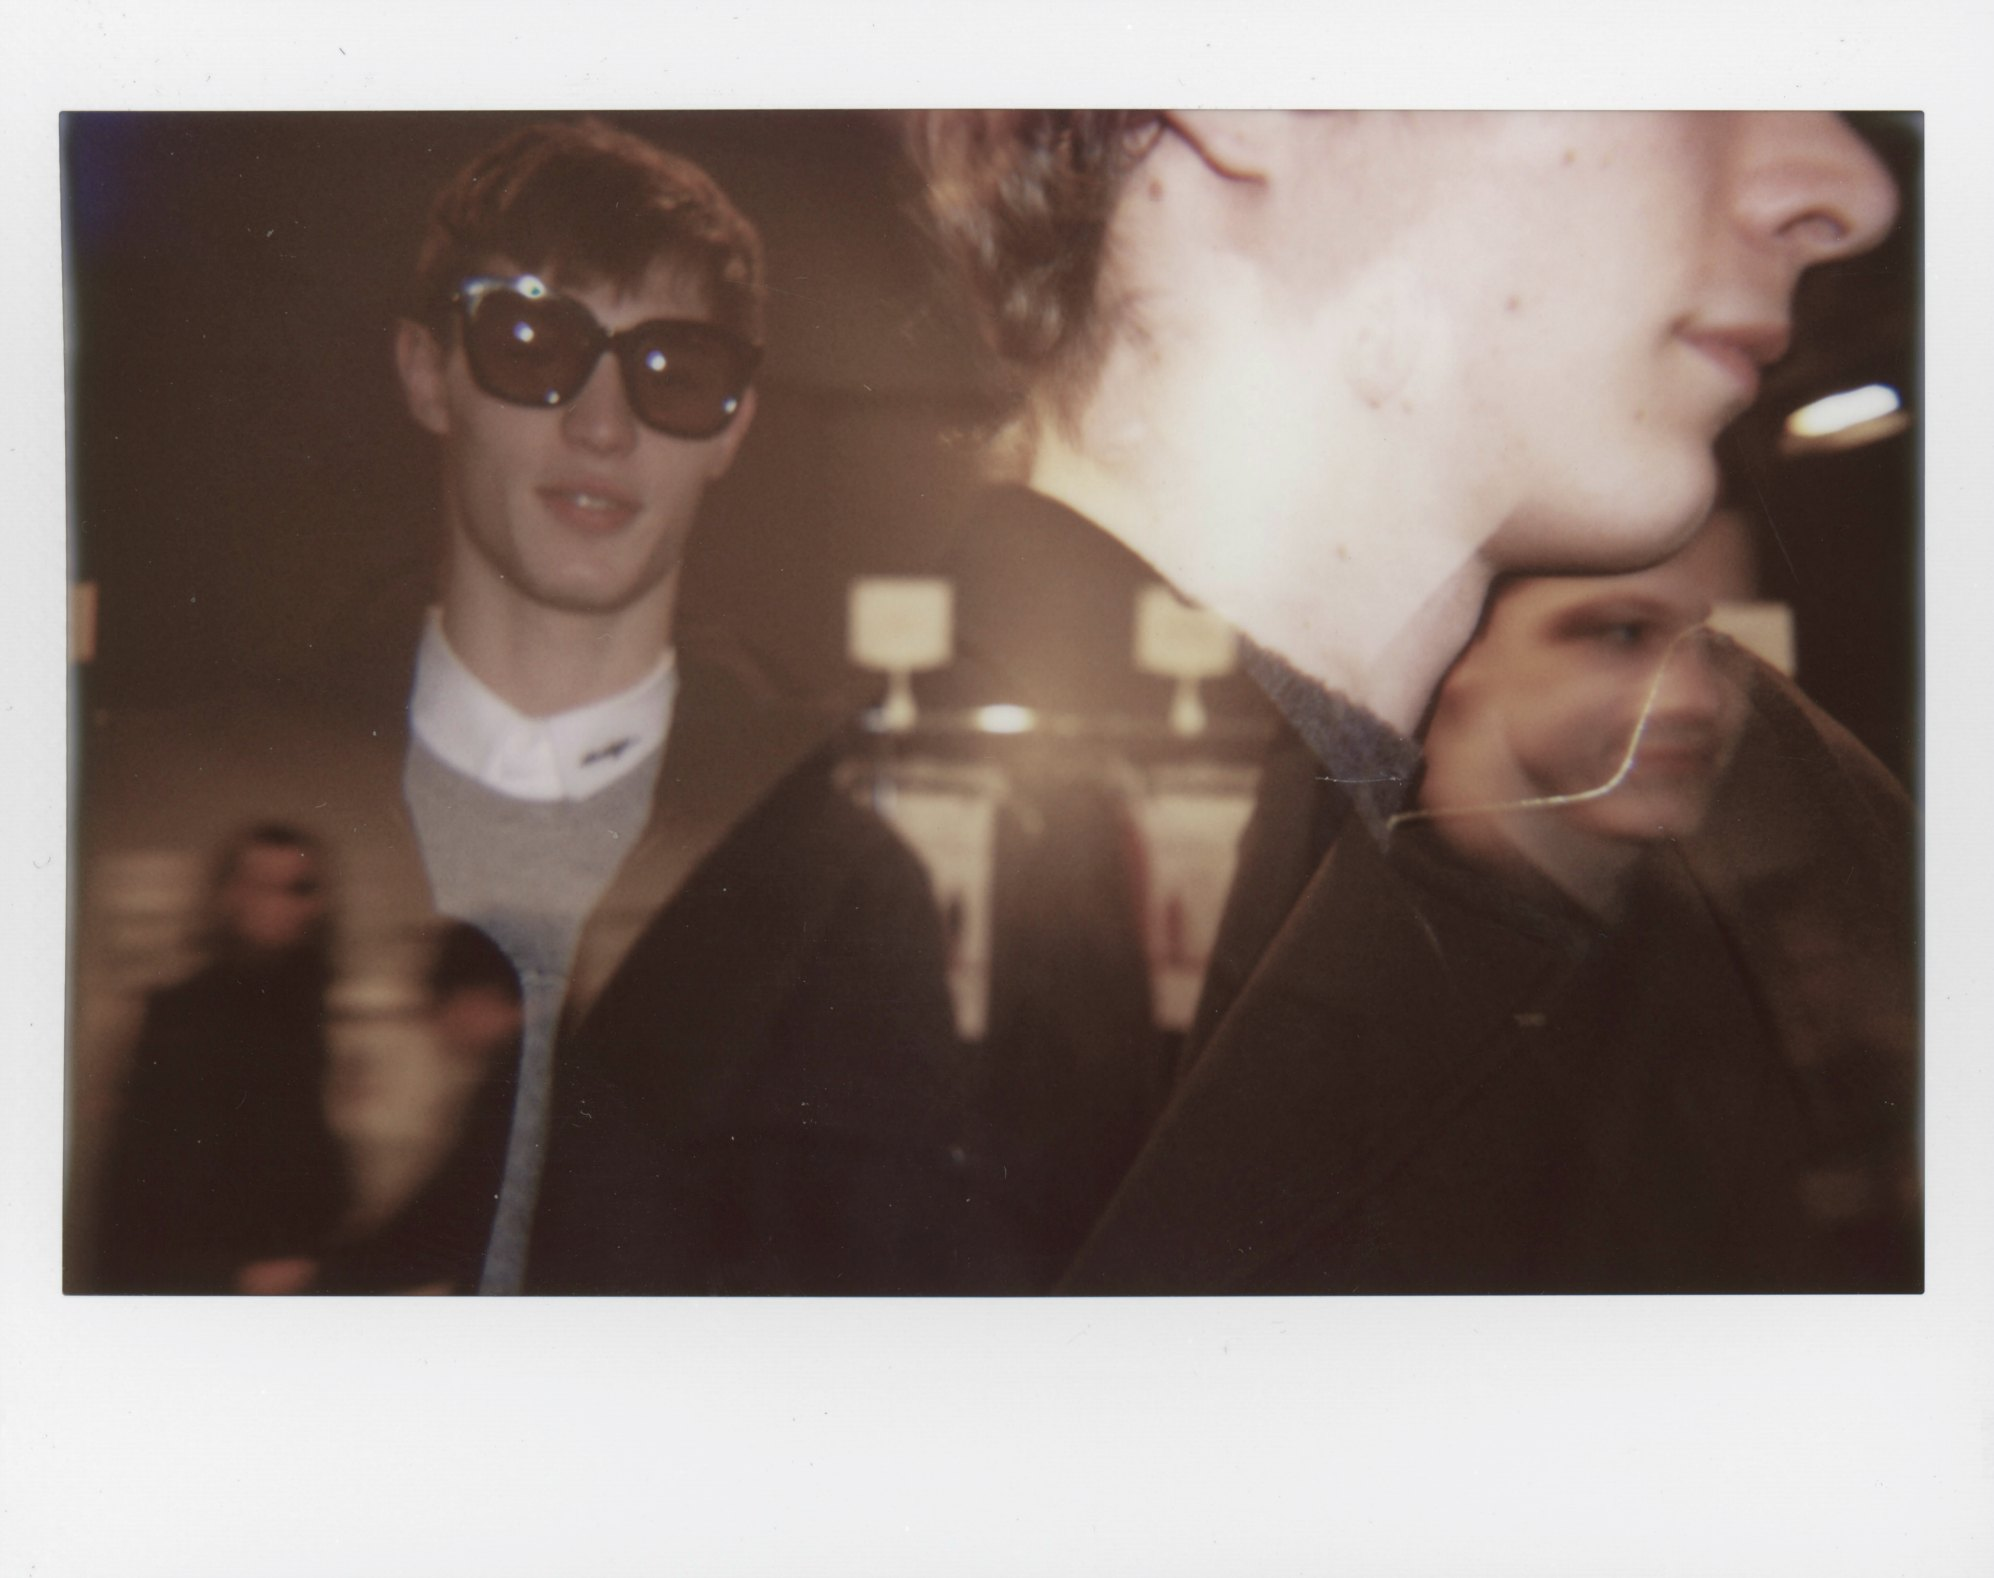 NYMD Day 1 Polaroid Recap by Fashion Photographer Christopher Logan